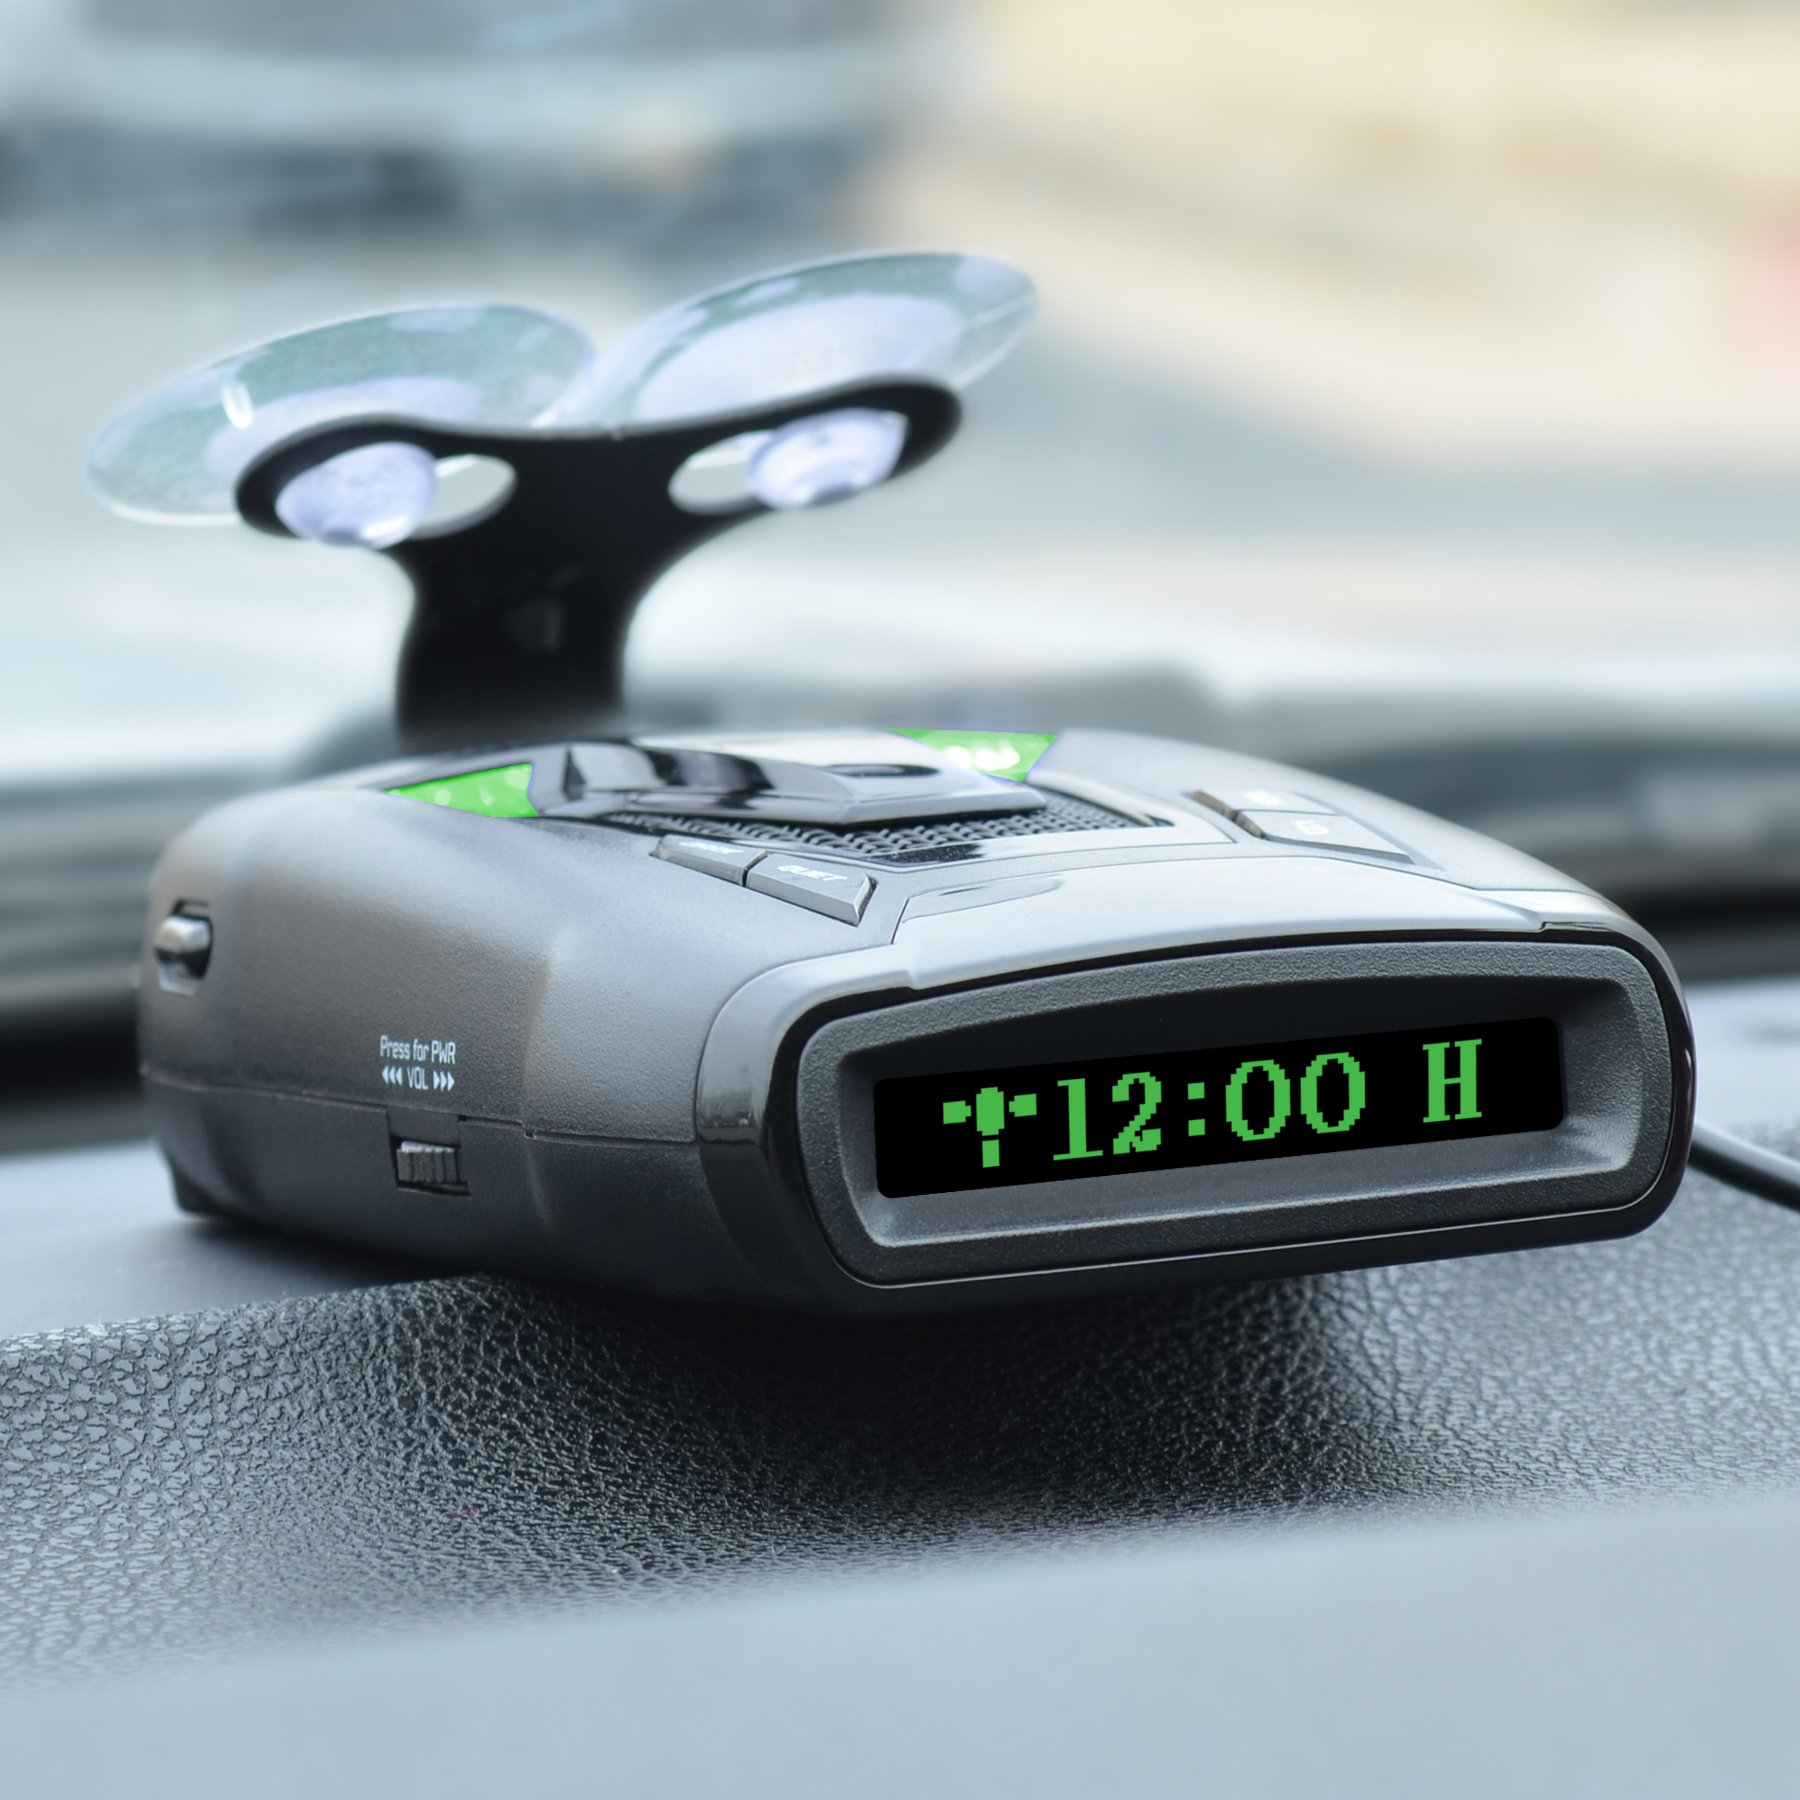 Whistler CR90 High Performance Laser Radar Detector: 360 Degree Protection, Voice Alerts, and Internal GPS by Whistler (Image #4)